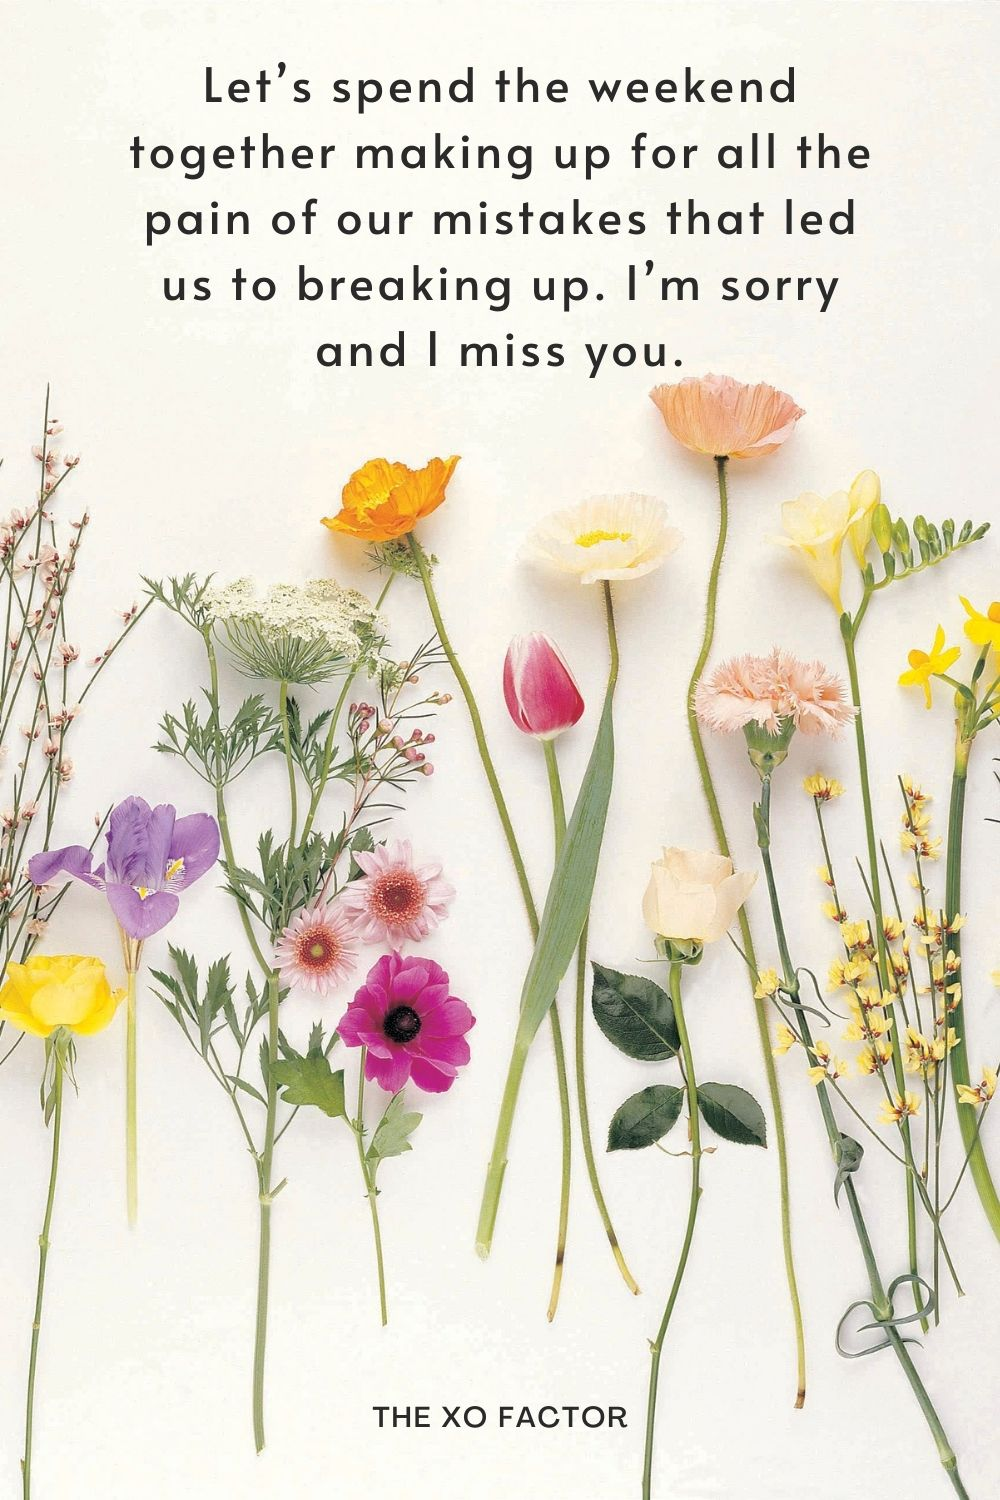 Let's spend the weekend together making up for all the pain of our mistakes that led us to breaking up. I'm sorry and I miss you.